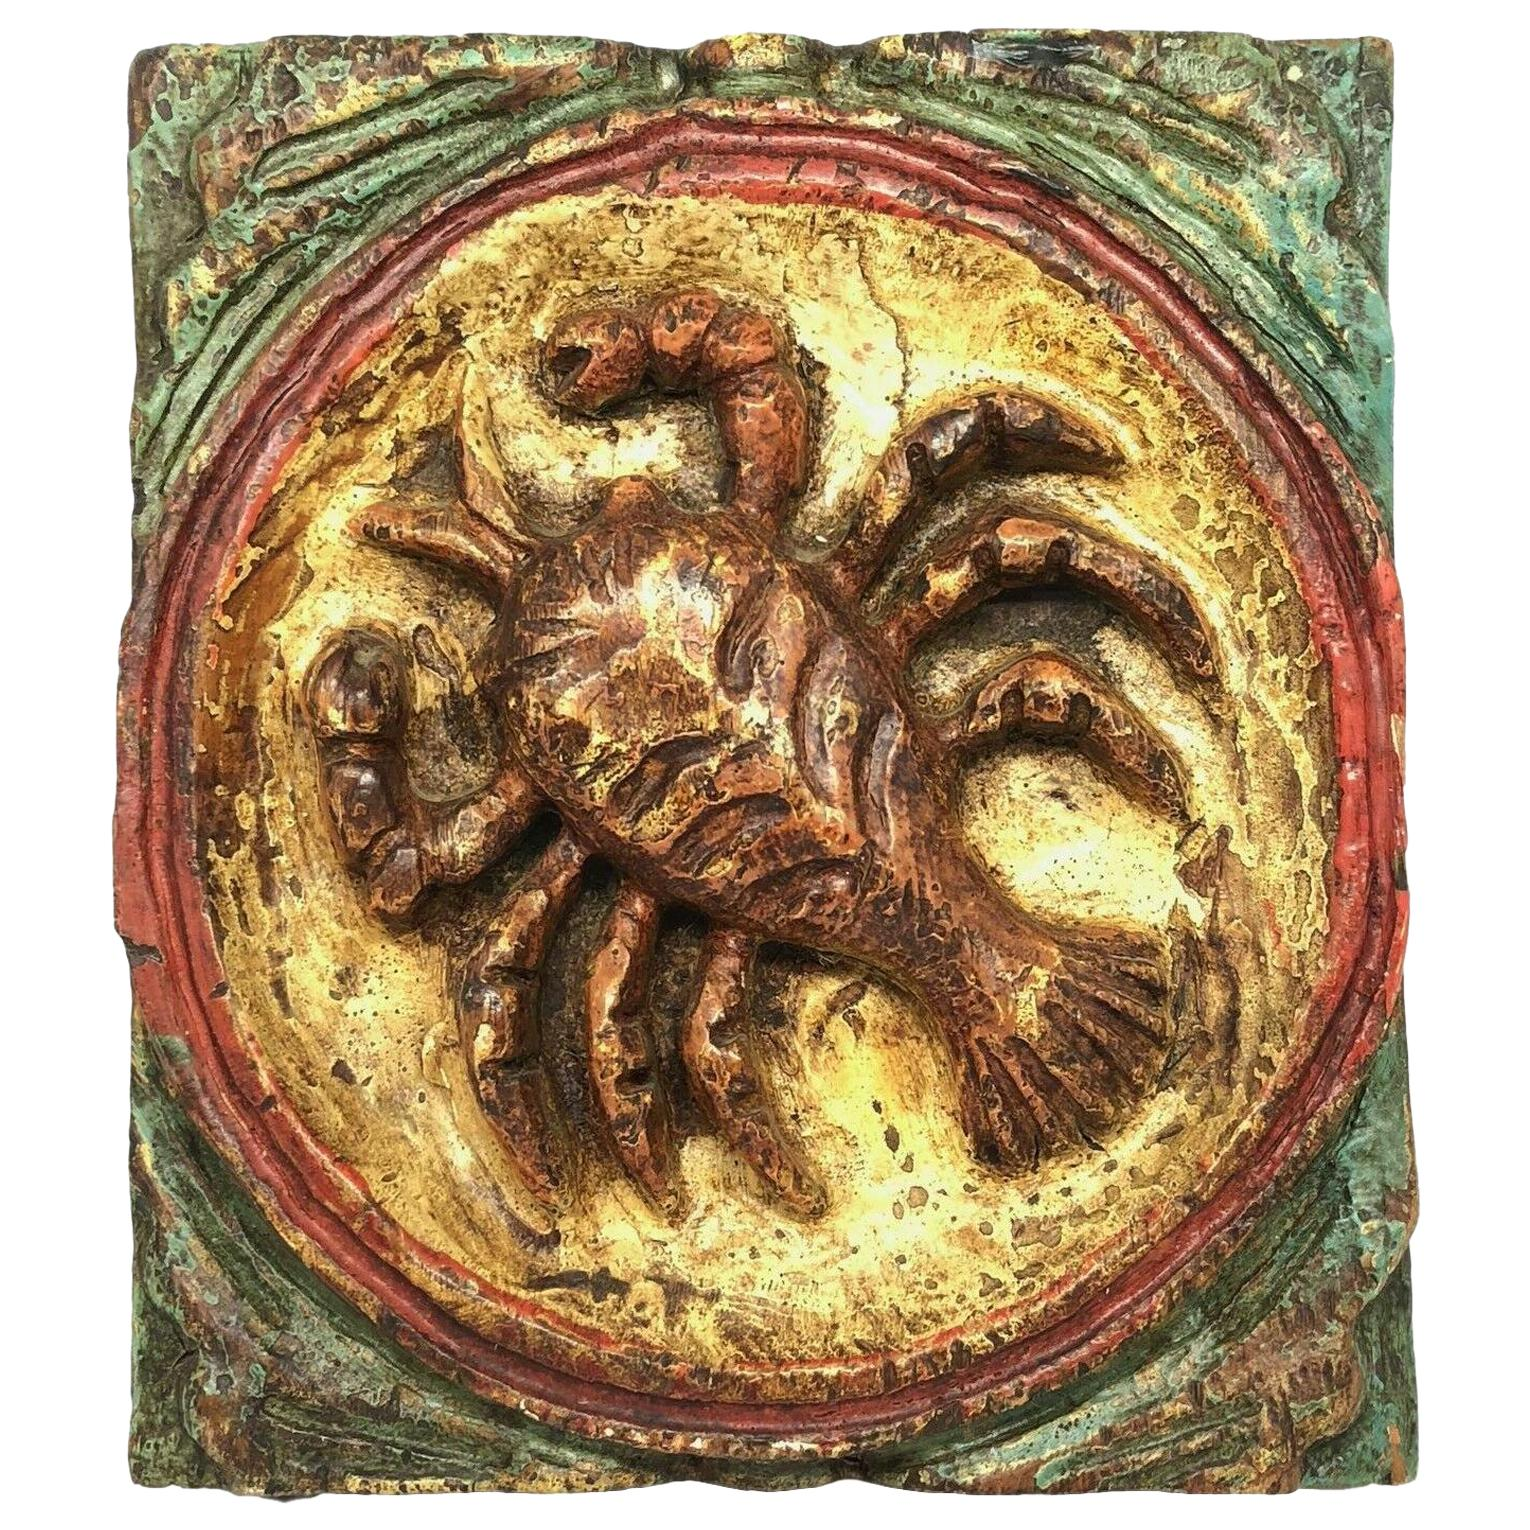 Wooden Zodiac Crab Cancer Wall Plaque Relief Brutalist Midcentury, German, 1970s